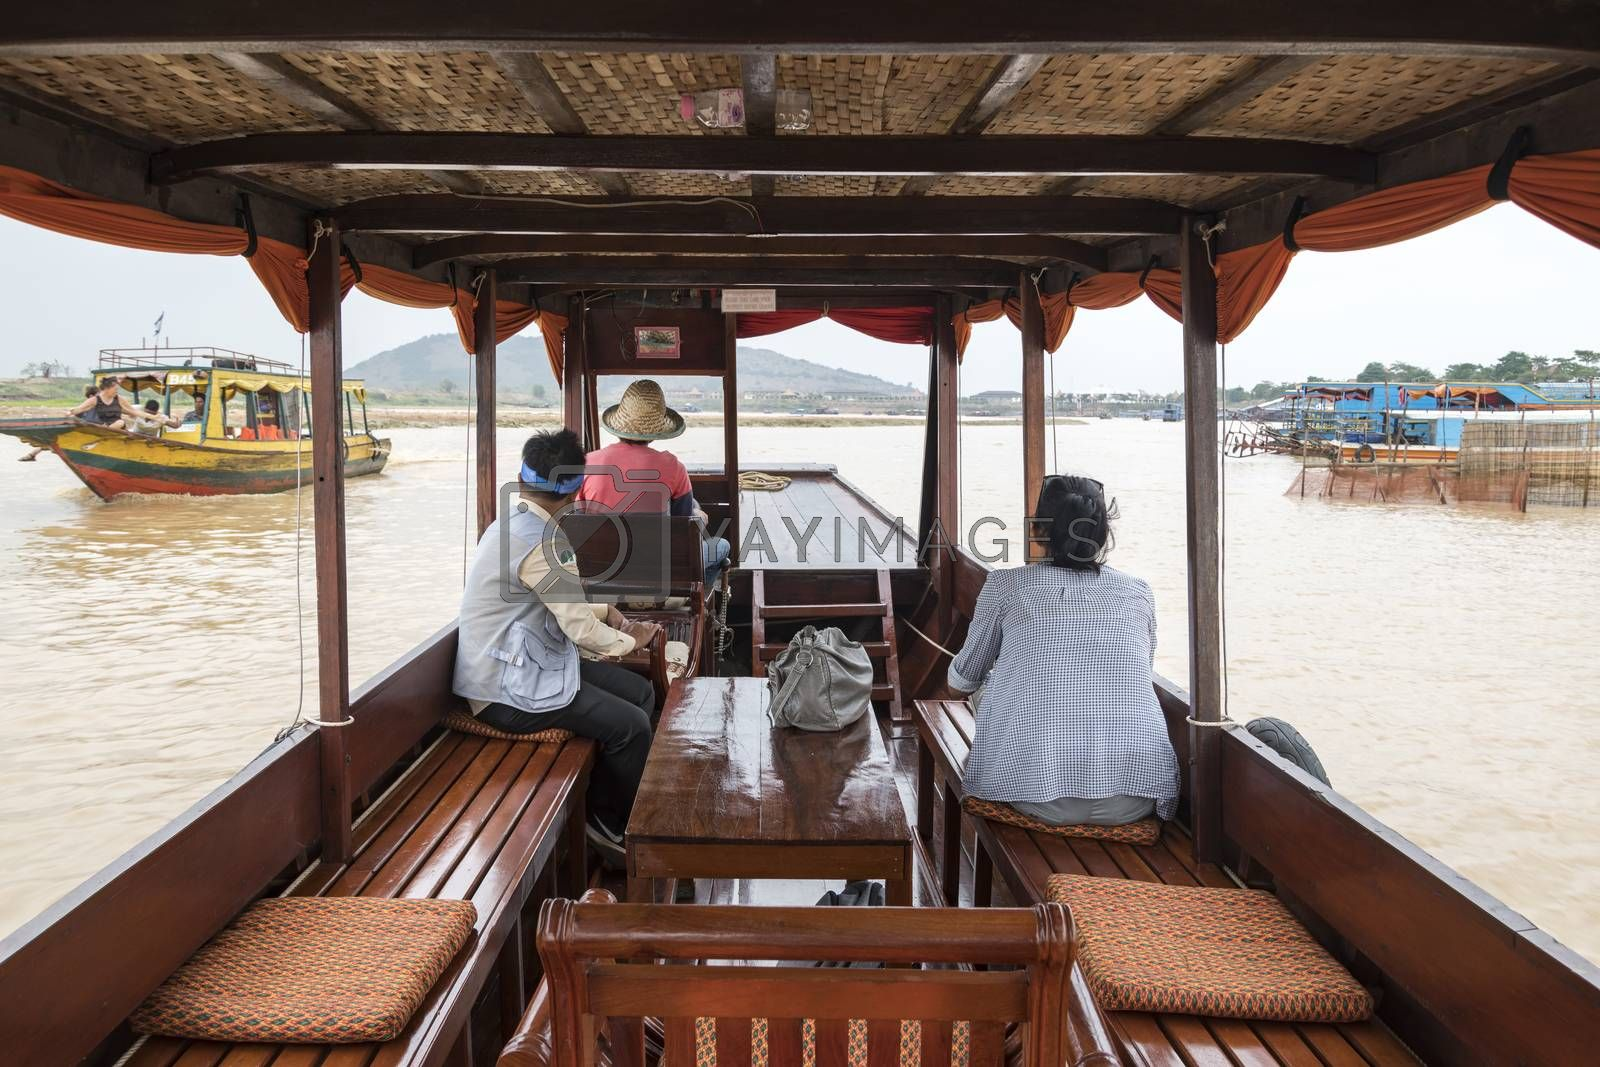 European tourist (lady) on a private cruise tour  with her guide going to visit the a village on the famous Tonle Sap Lake, Siem Reap, Cambodia, Asia